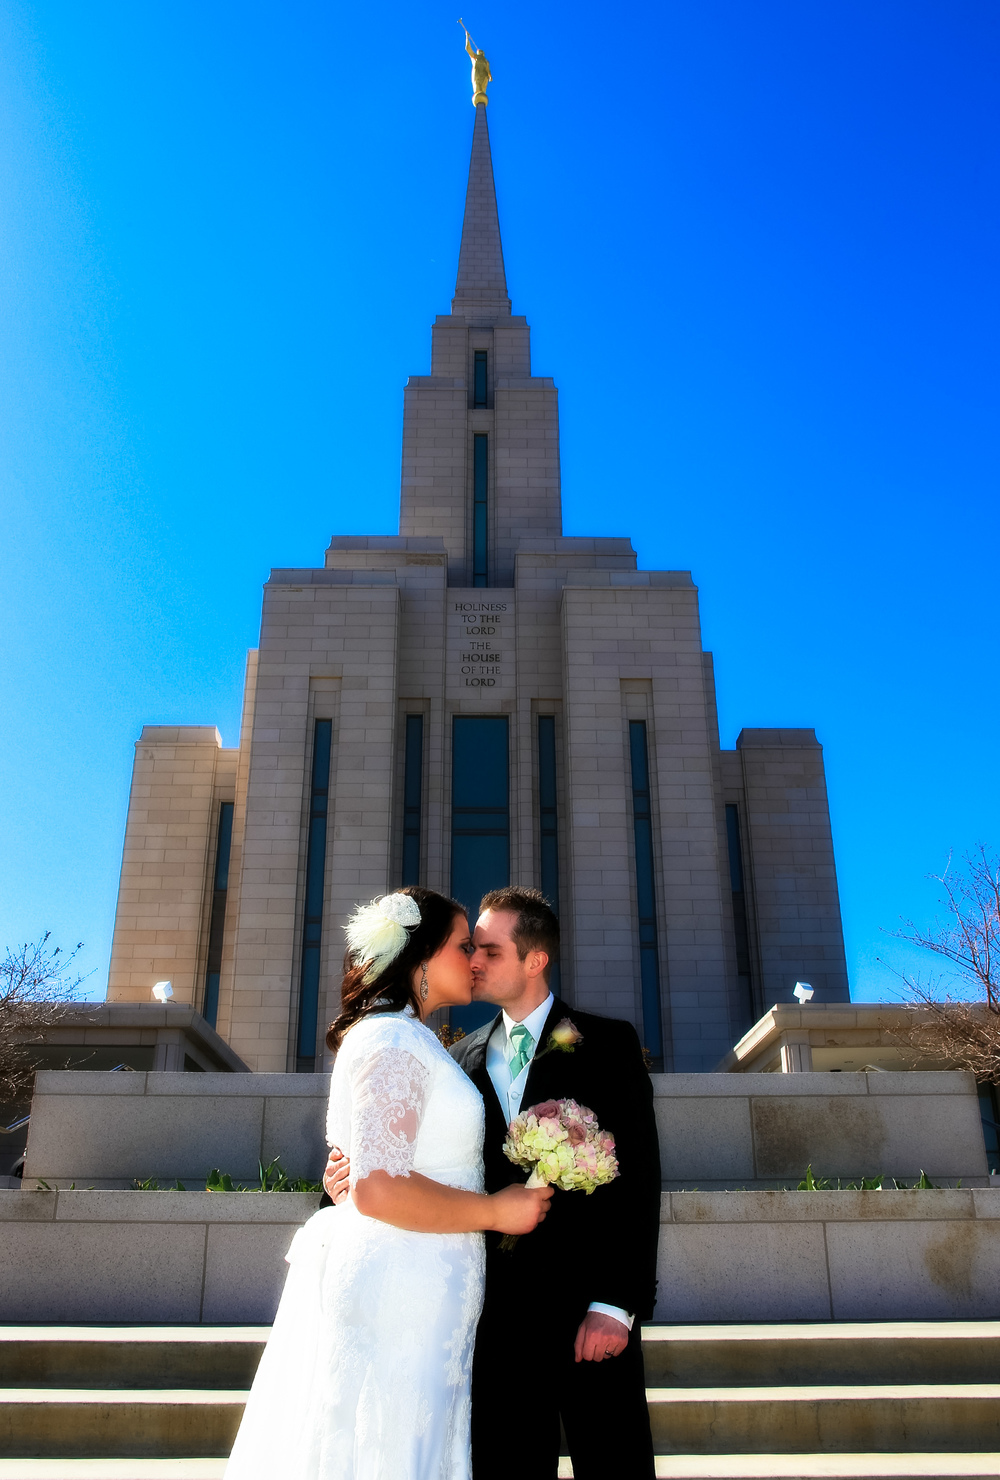 Oquirrh Mountain LDS Utah Temple Wedding Photography